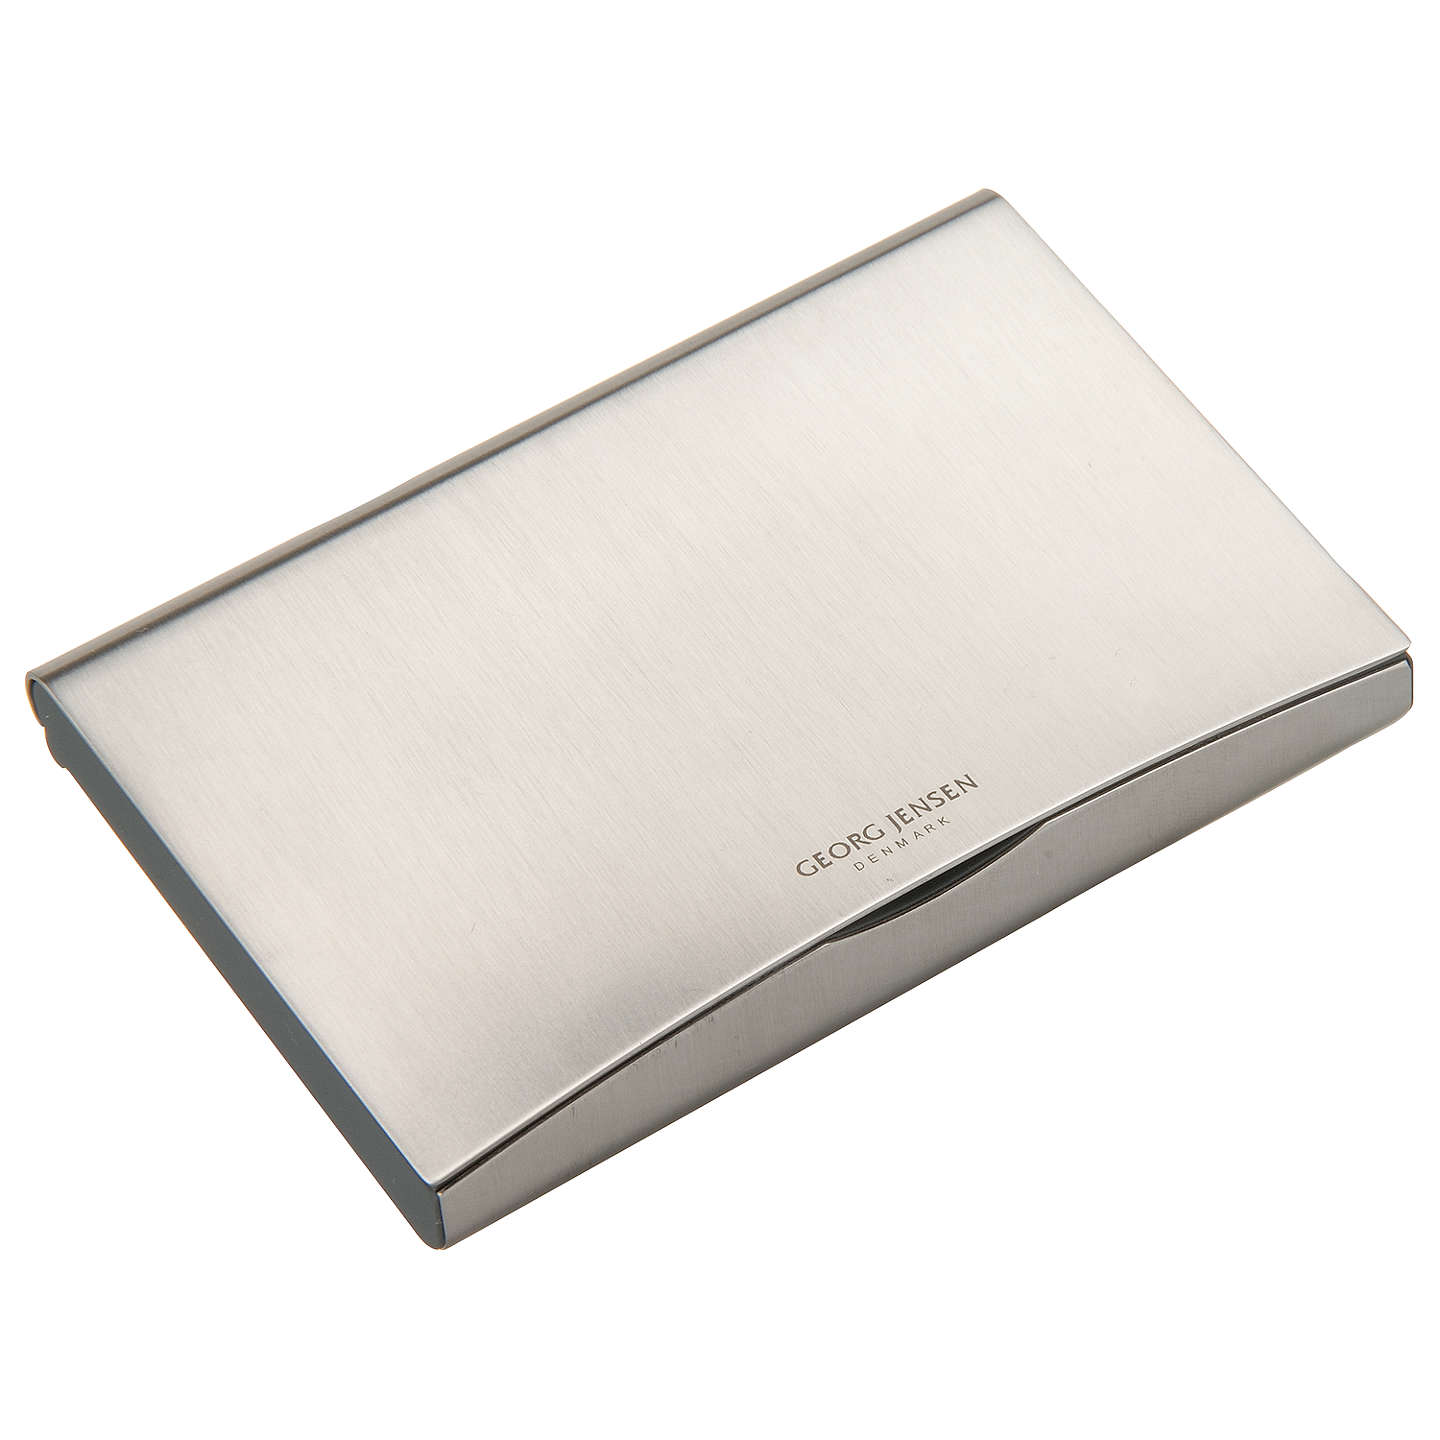 Georg jensen living business card holder at john lewis georg jensen living business card holder reheart Choice Image